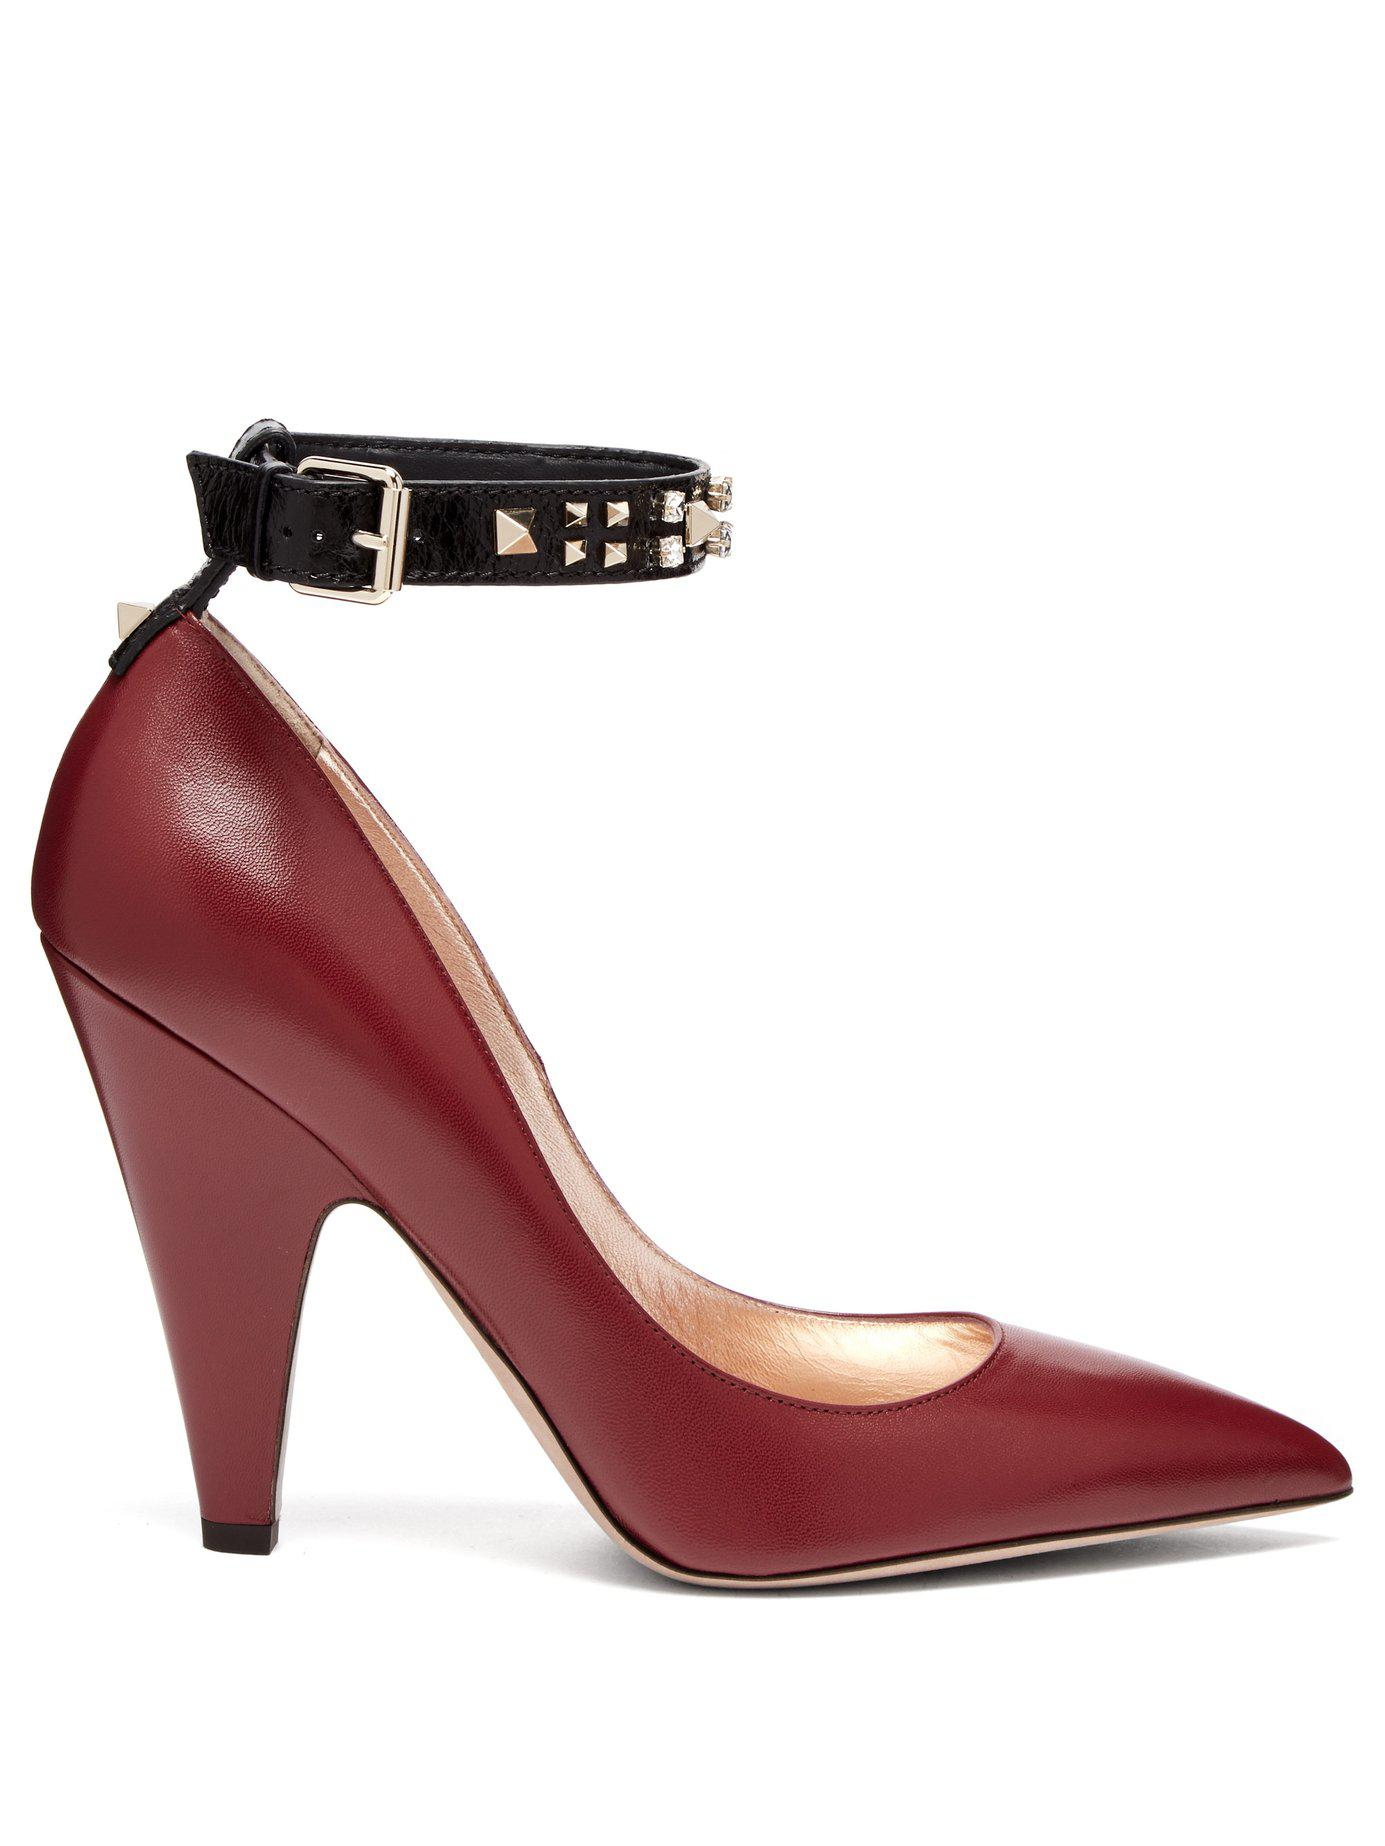 78e87a6cb38 Lyst - Valentino Rockstud Ankle Strap Leather Pumps in Pink